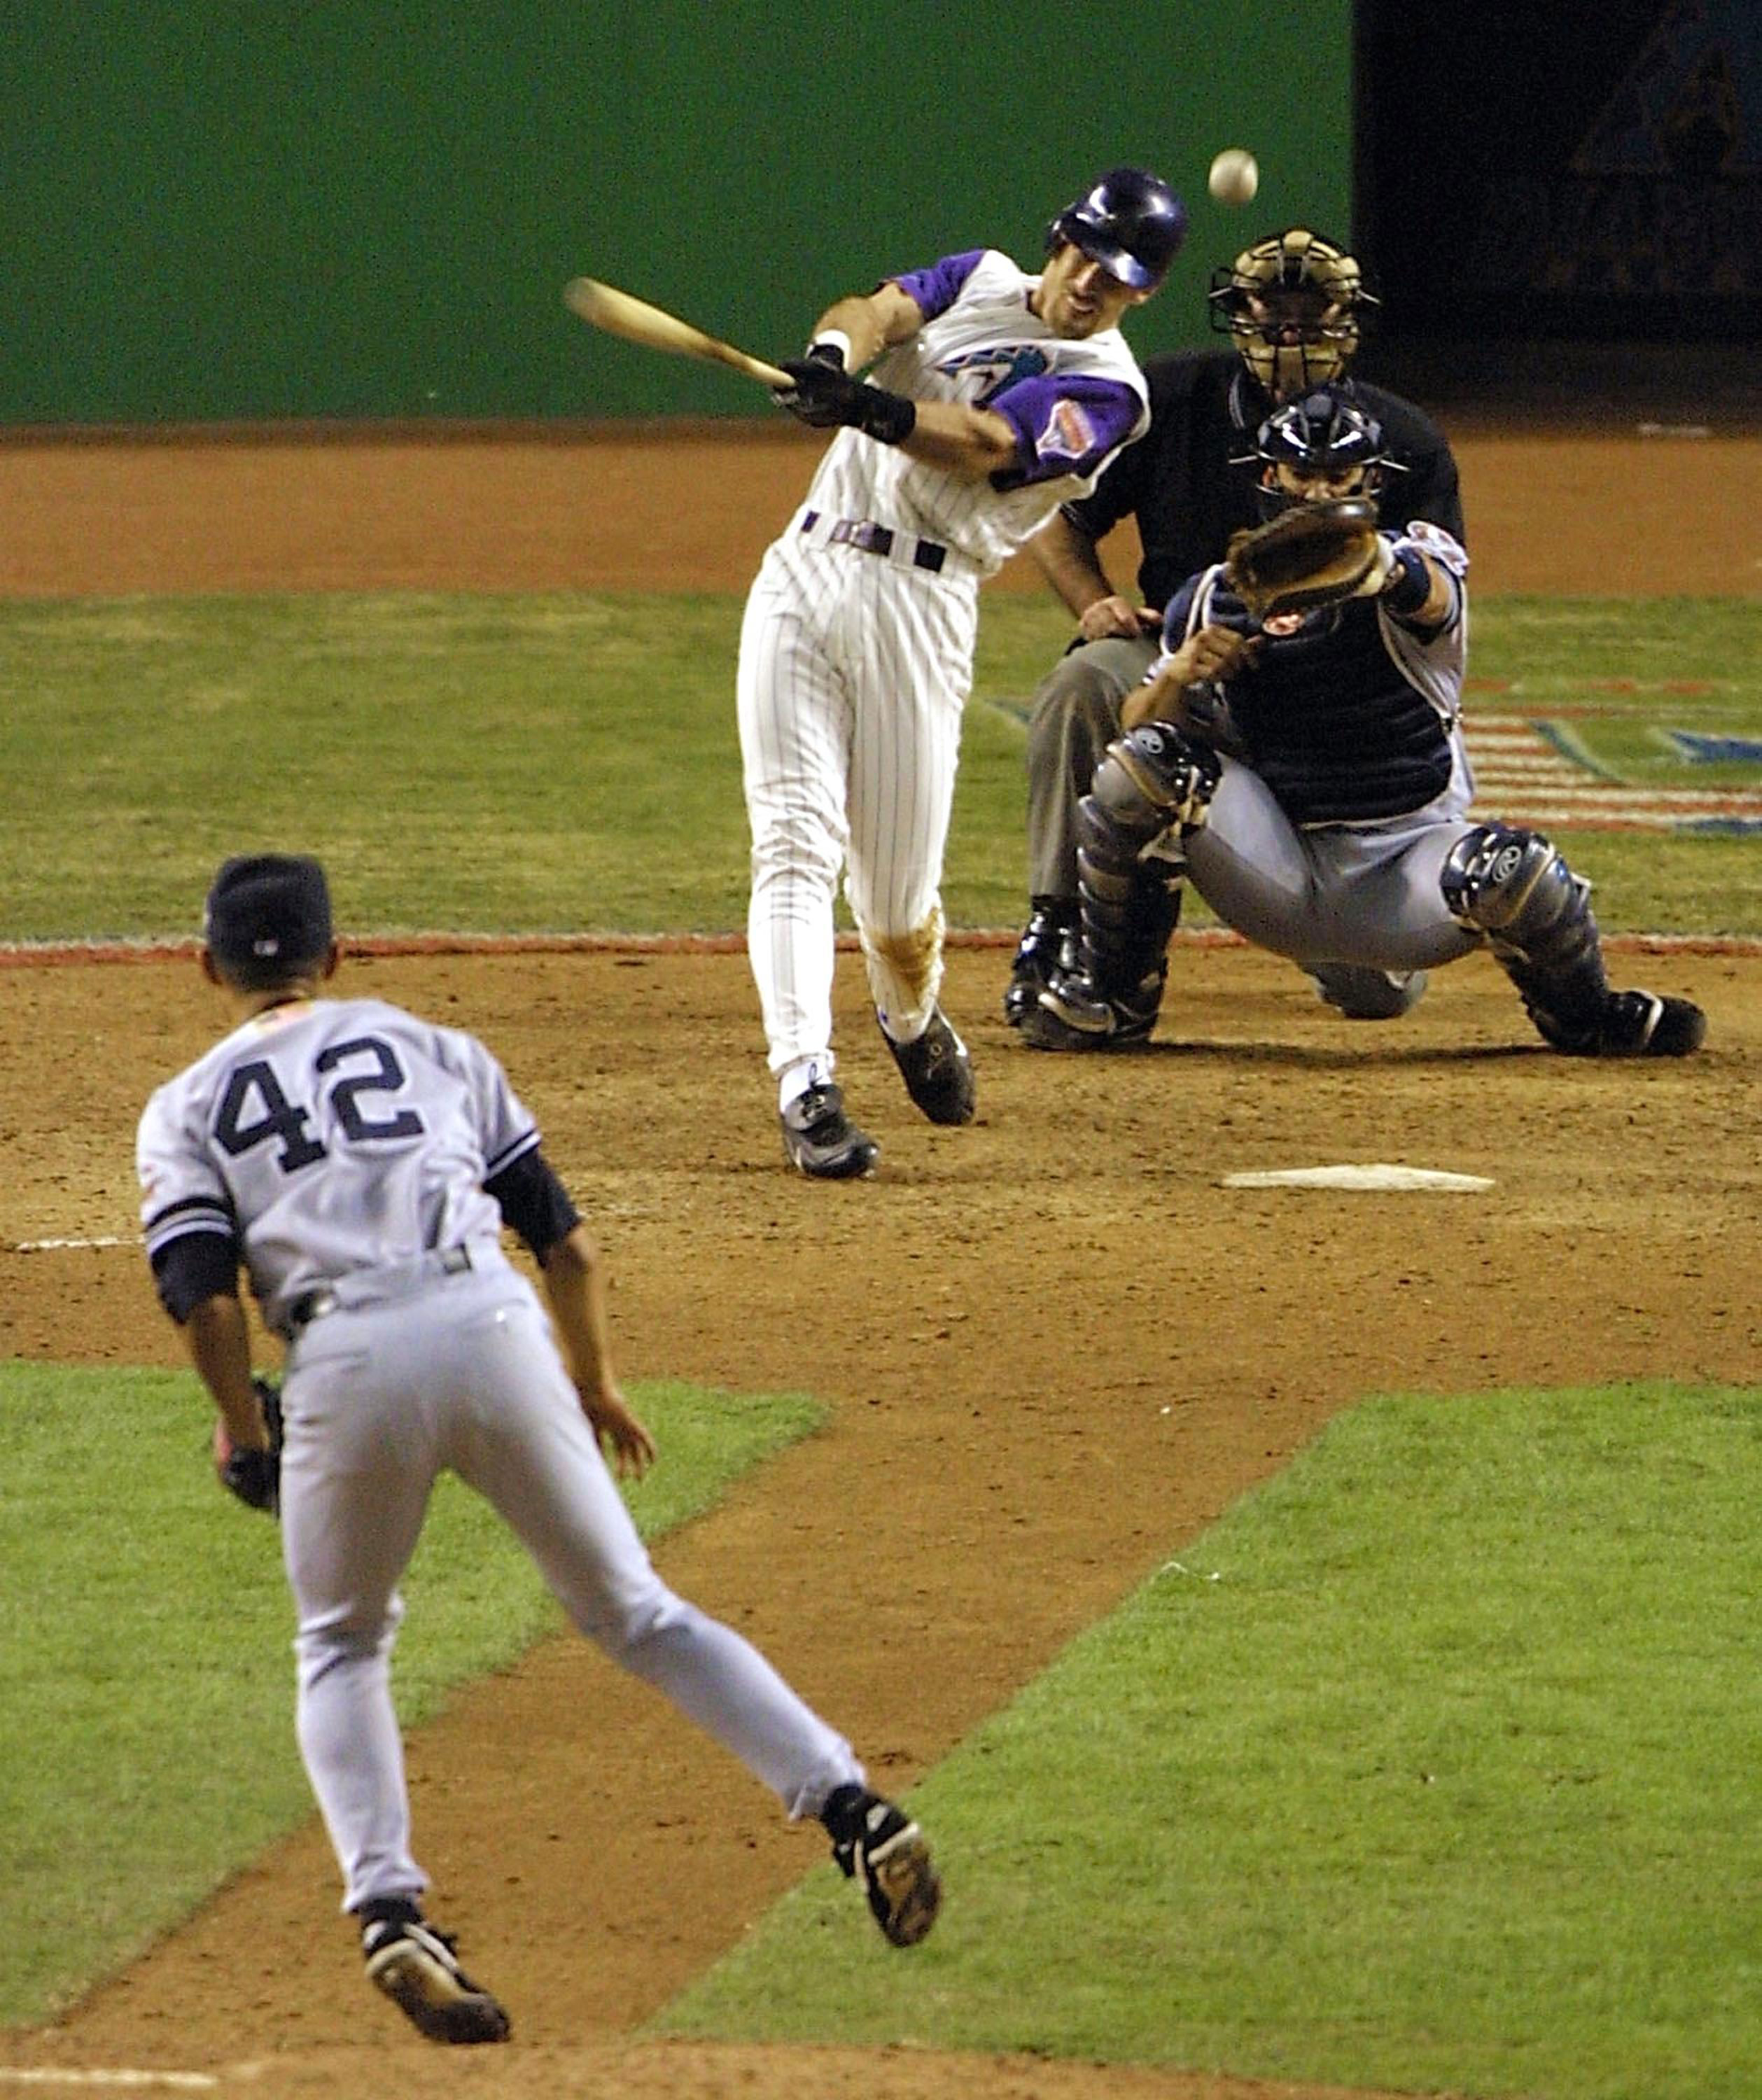 Nov. 4, 2001: Luis Gonzalez, of the Arizona Diamondbacks, at bat, bottom of the 9th, Game 7, the greatest closer of all time, Mariano Rivera, of the New York Yankees is on the mound.  The Yankees are looking for their fourth world series in a roll to continue their dynasty.  The score is tied, 2-2, bases are loaded.  Gonzalez hits a floater into the shallow centerfield, and the Diamondbacks win the World Series.